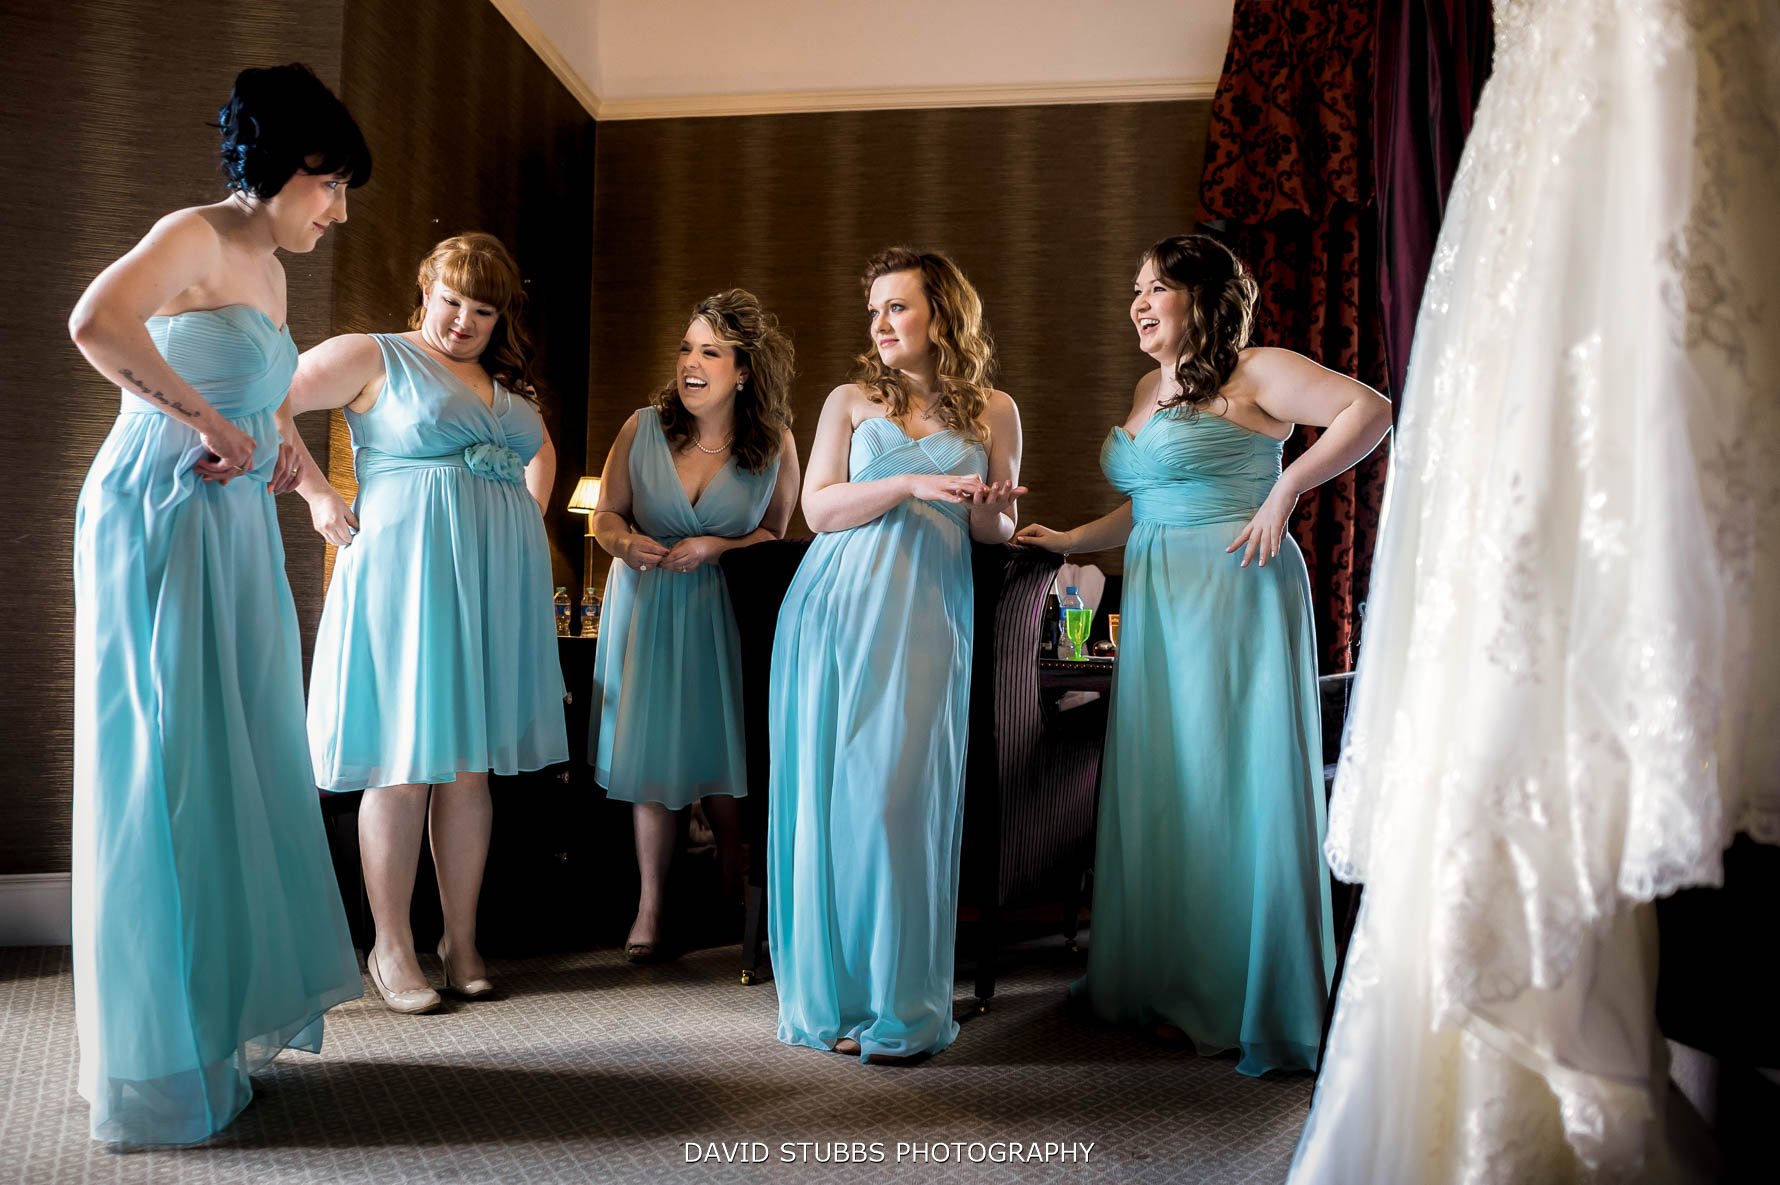 bridesmaids waiting to be called for the wedding ceremony